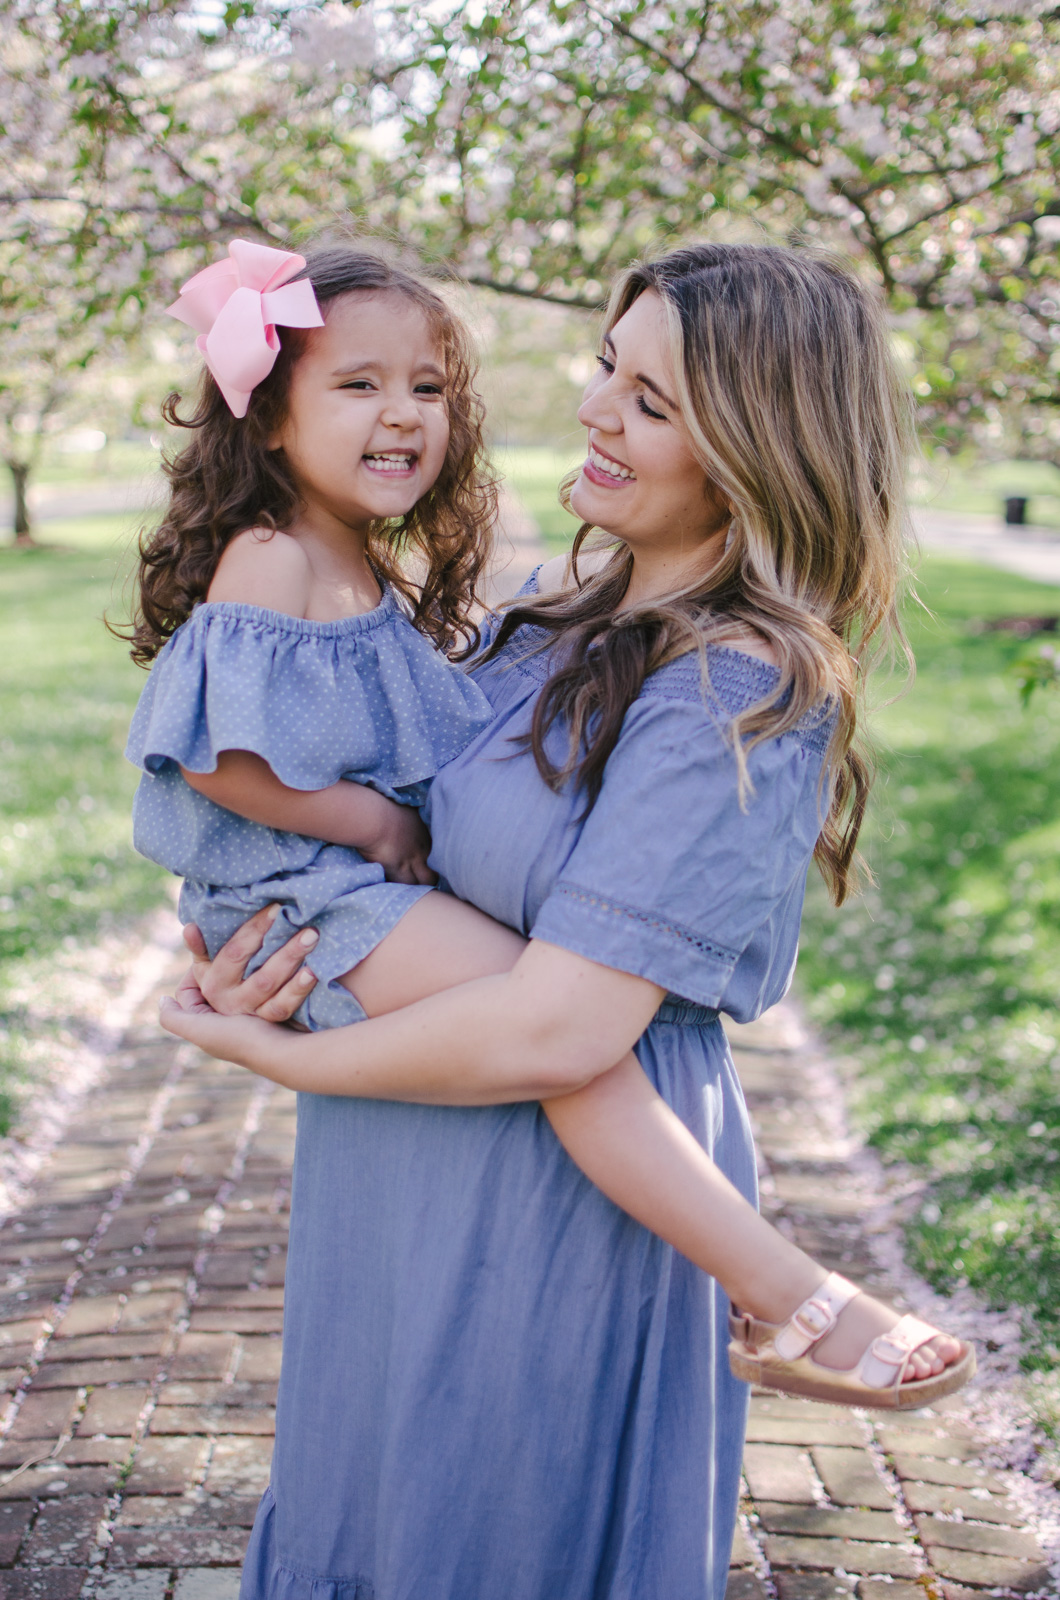 spring mommy and me outfits - chambray mother daughter outfits | For more mommy and me outfits, see bylaurenm.com!